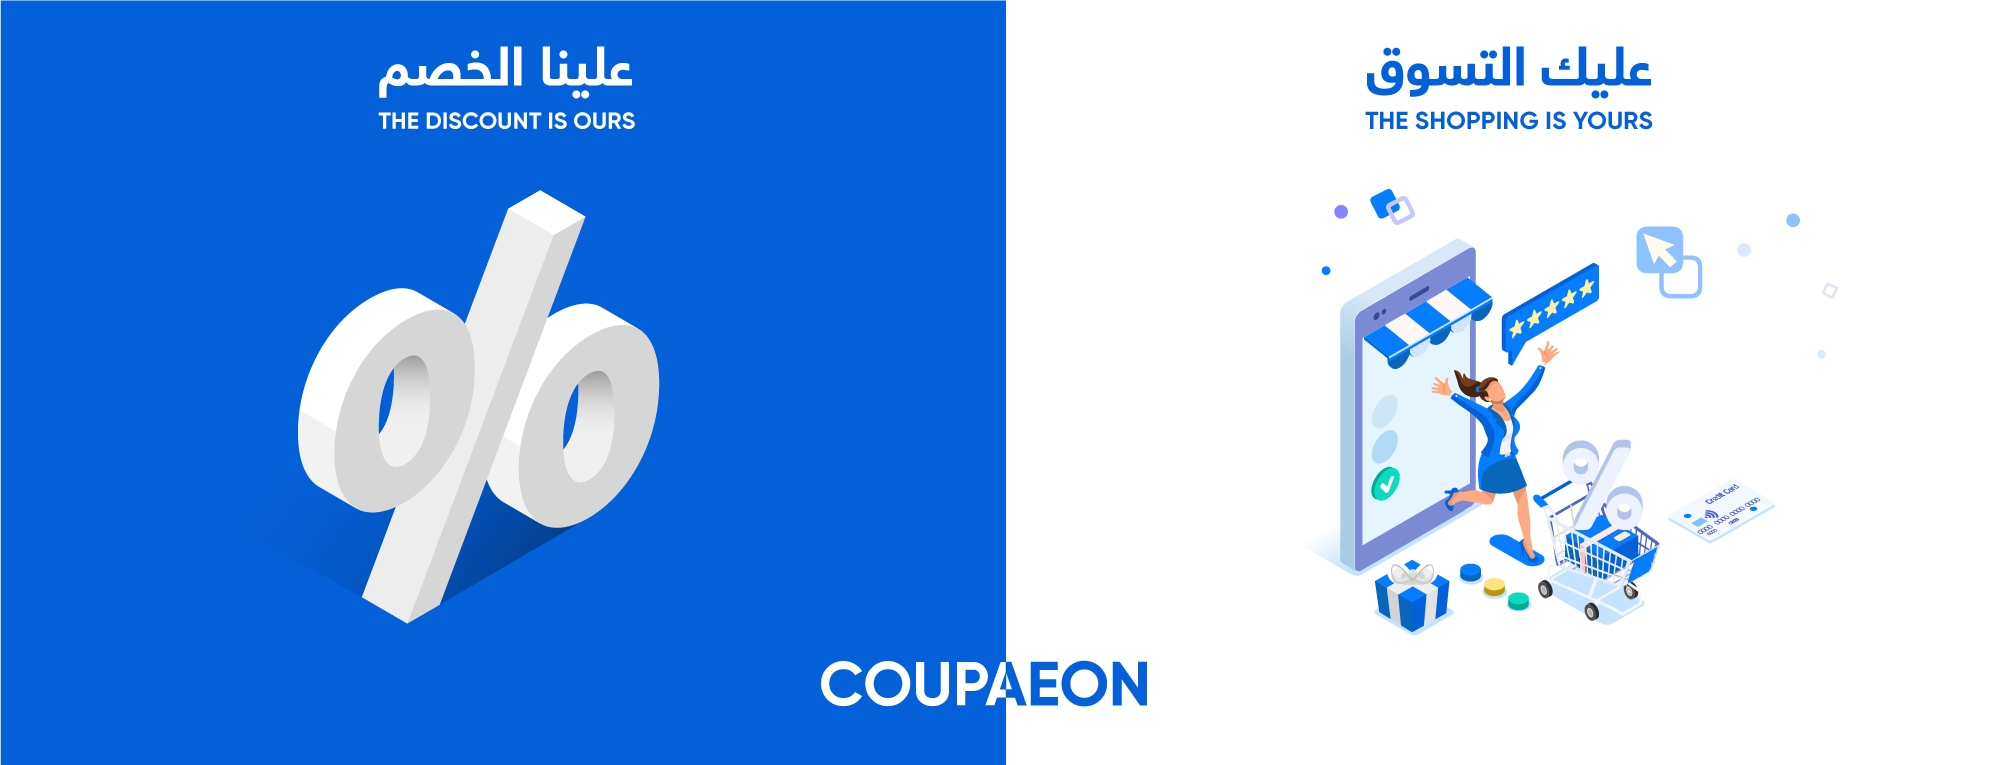 coupaeon  (@coupaeon) Cover Image